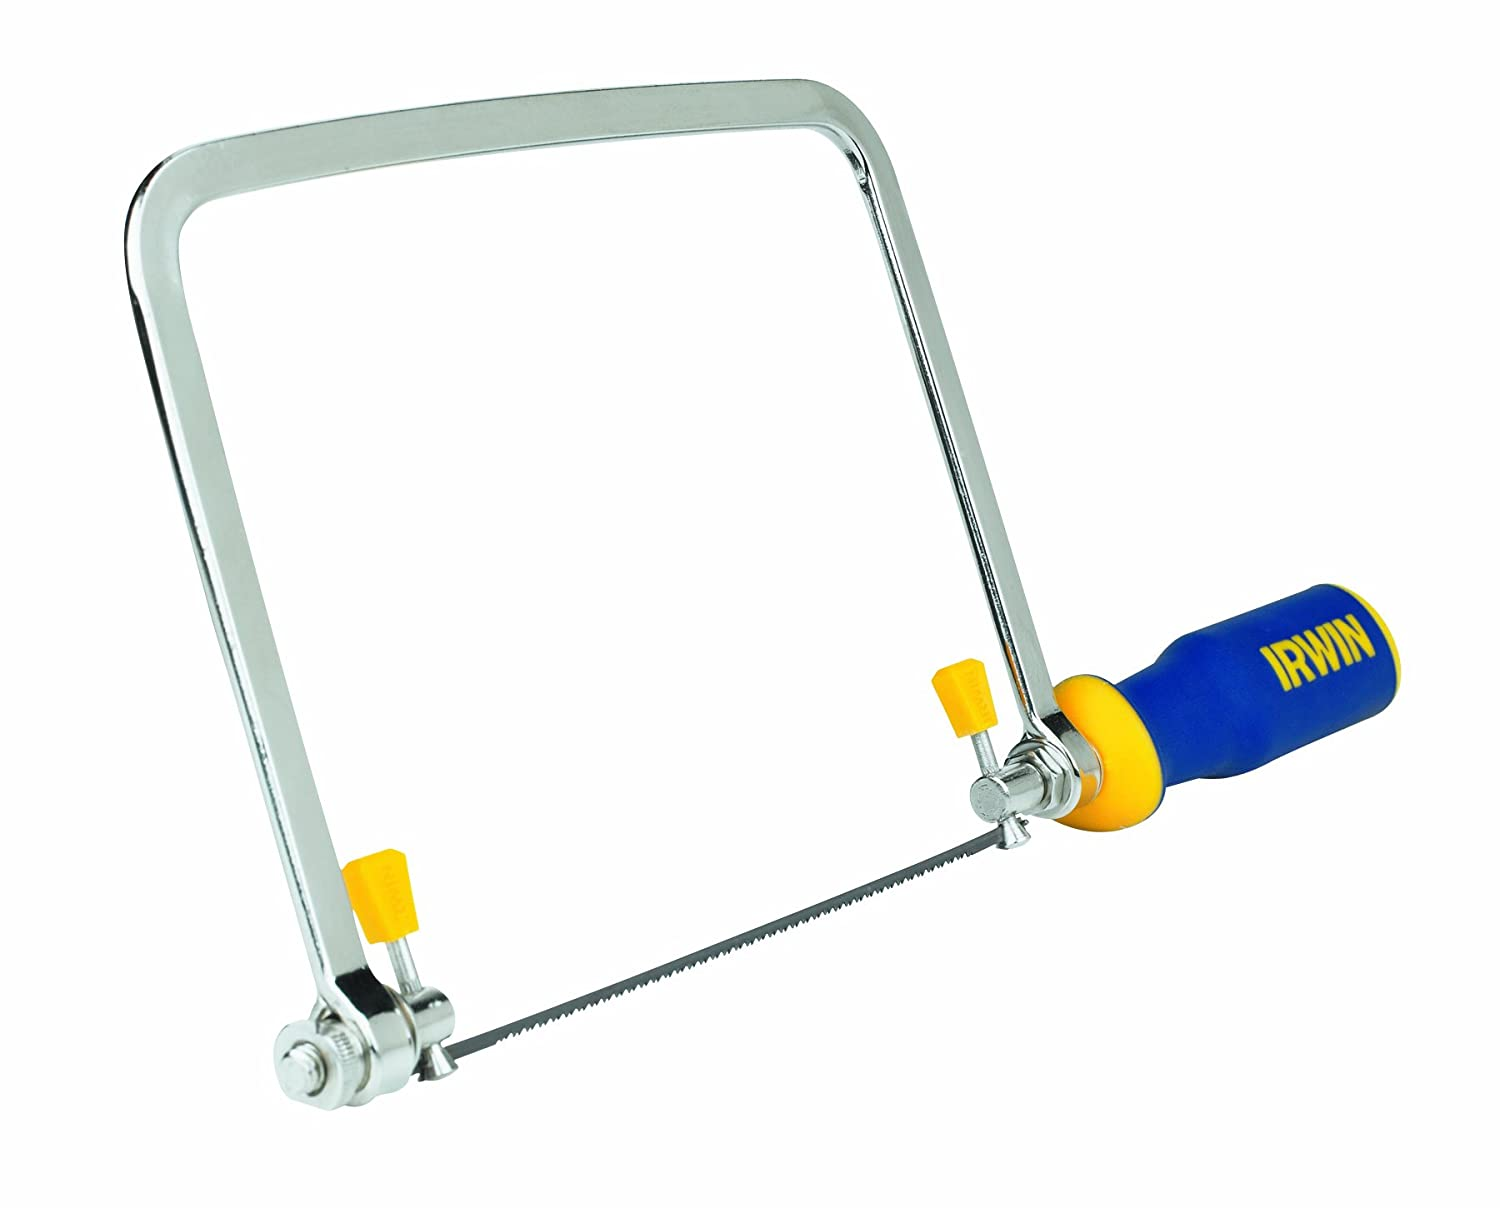 Irwin tools protouch coping saw 2014400 amazon greentooth Gallery